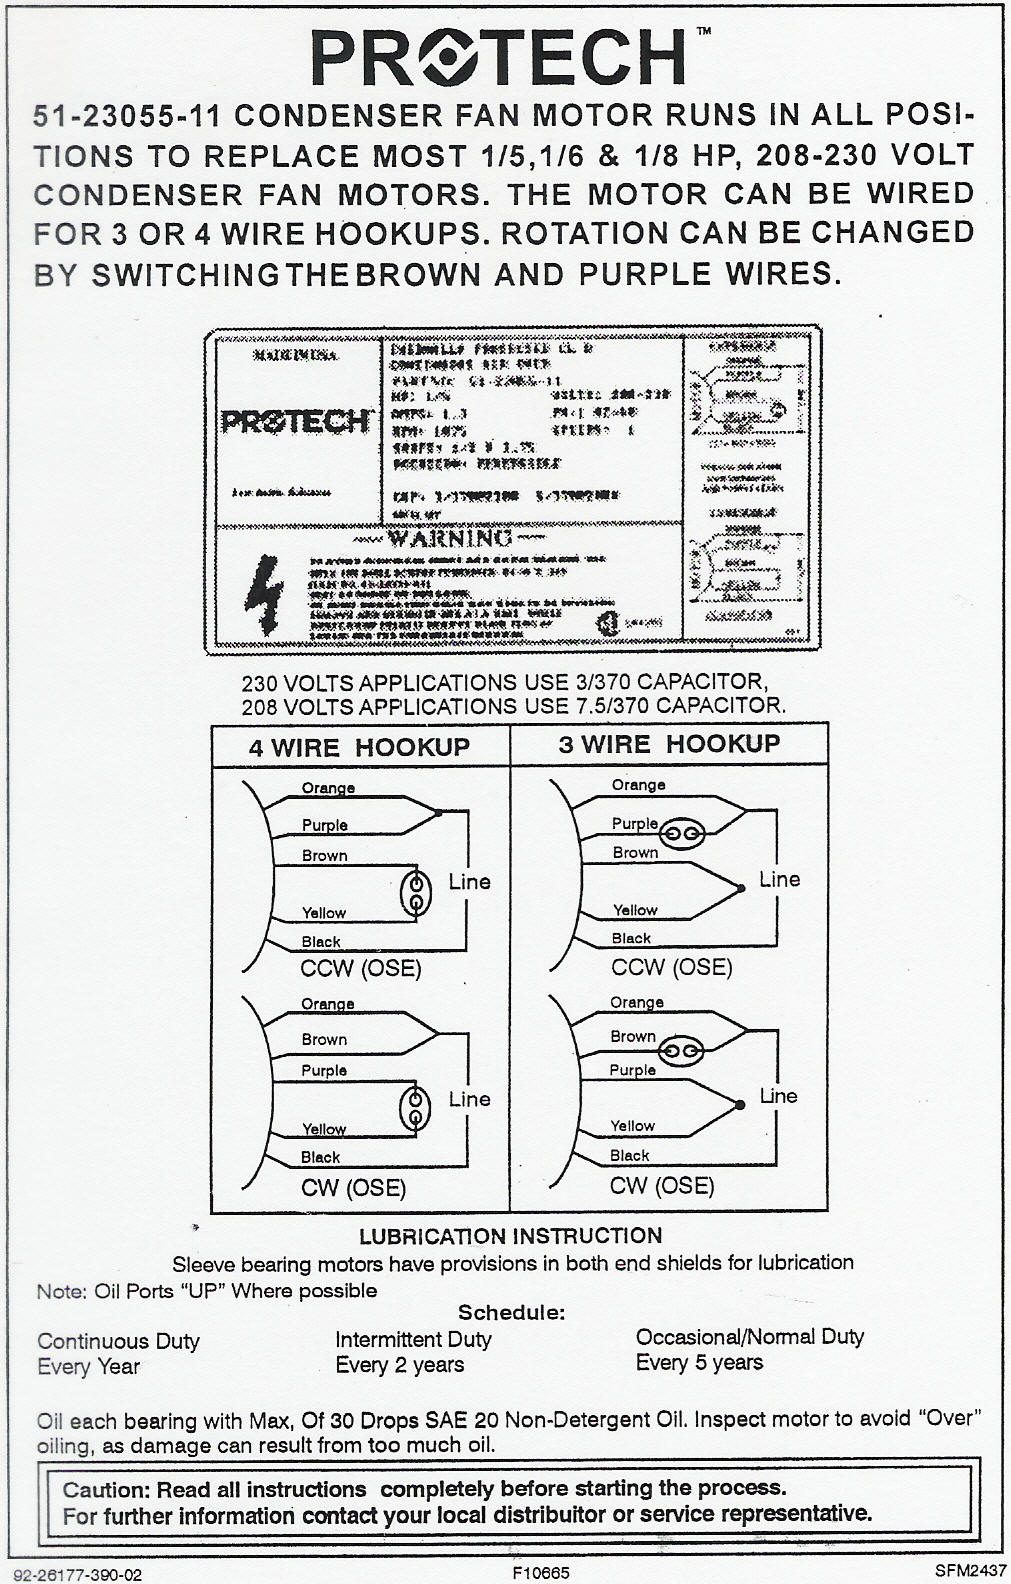 ruud air handler wiring diagram ruud heat pump wiring colors heat pump systems contactors for air conditioners and heat pumps rheem thermostat wiring diagram